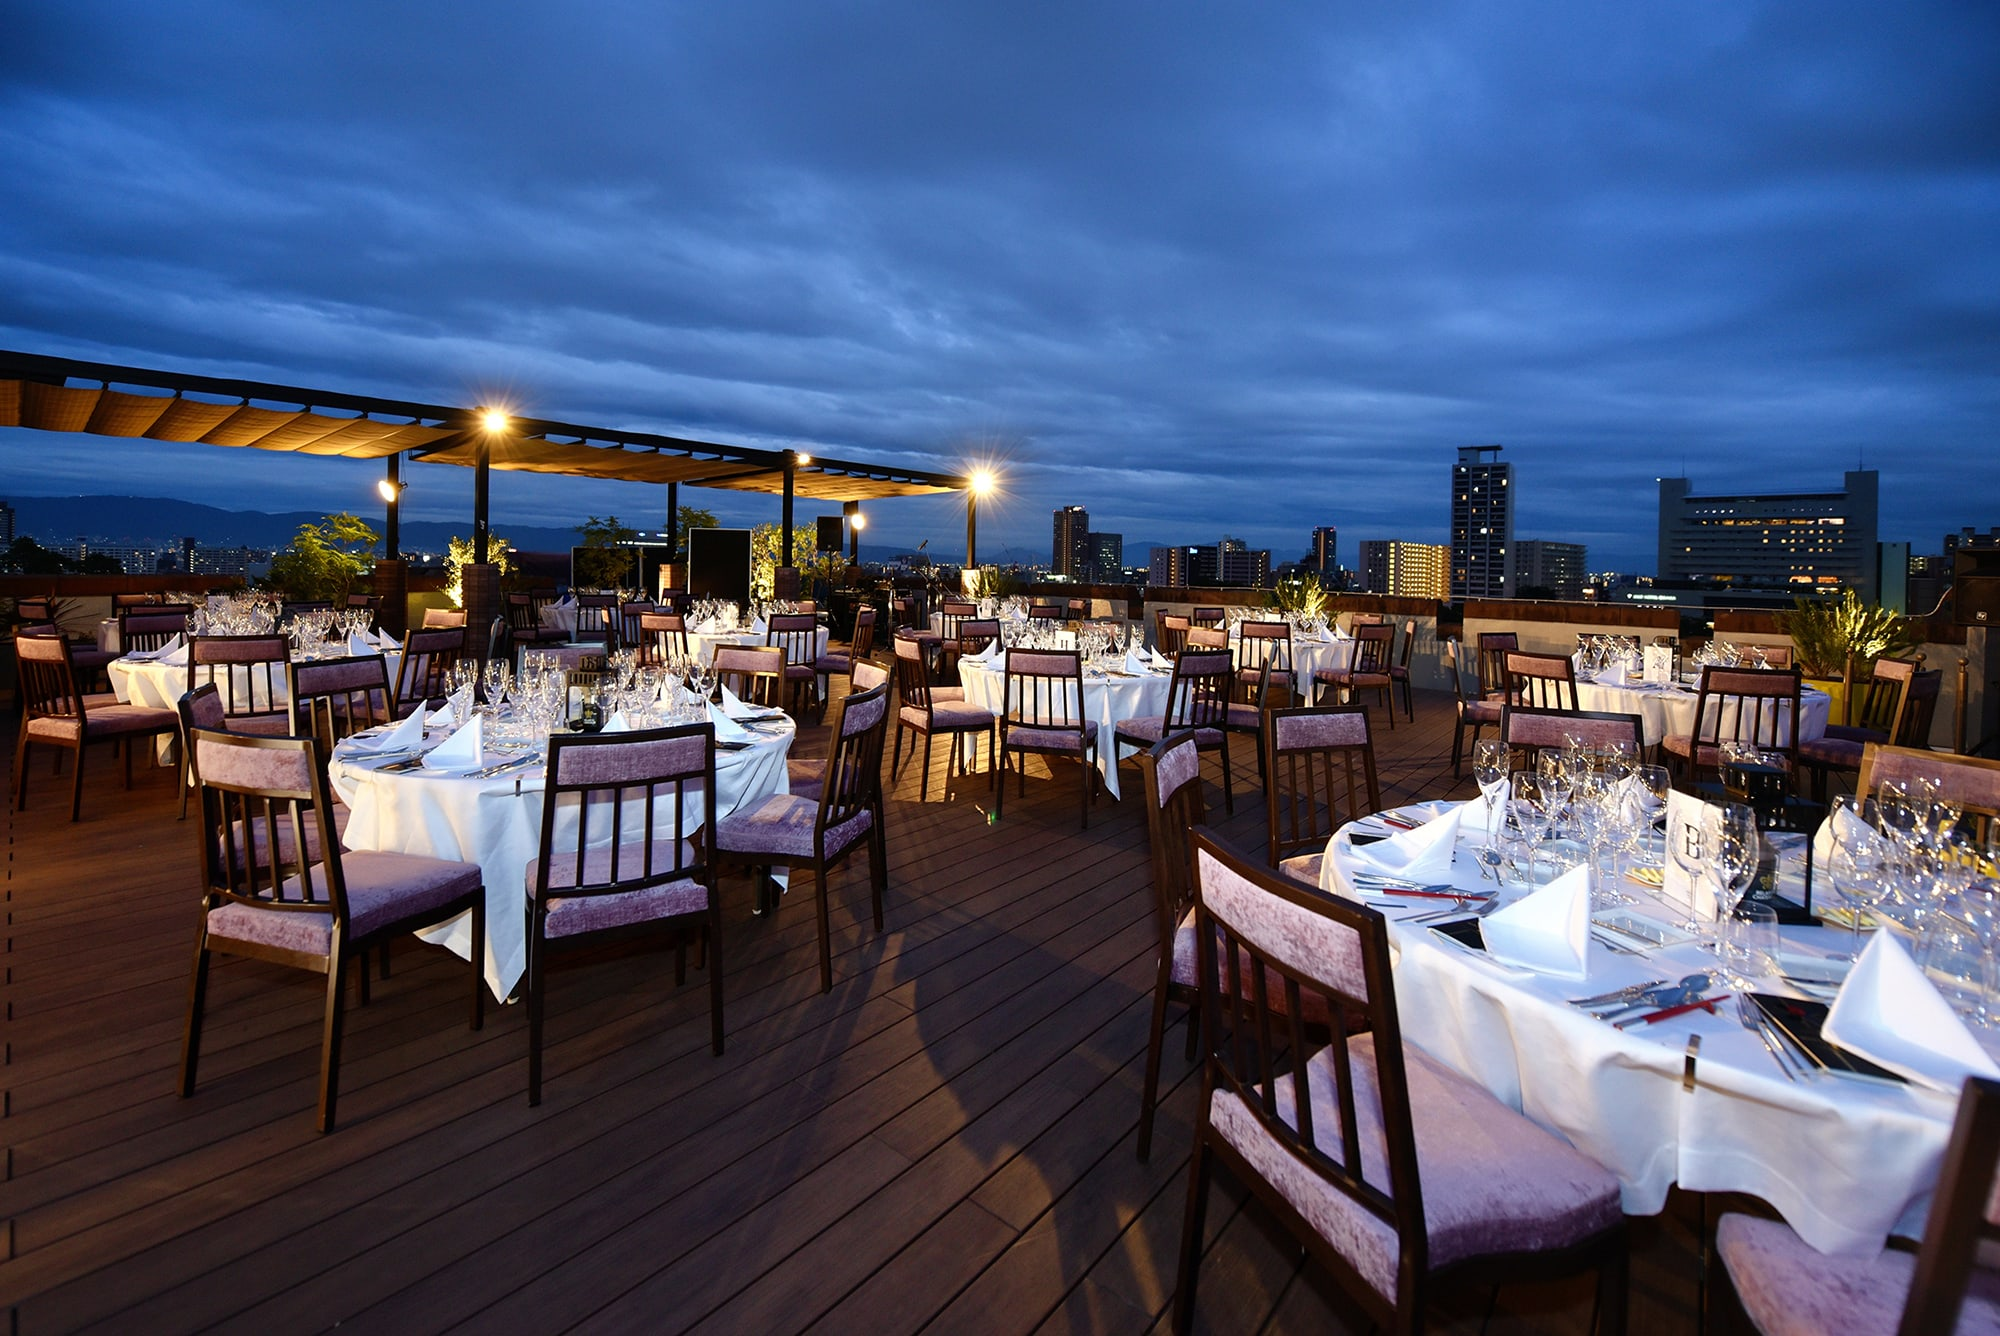 Around dusk, the guests are about to arrive at the terrace where the venue was held.